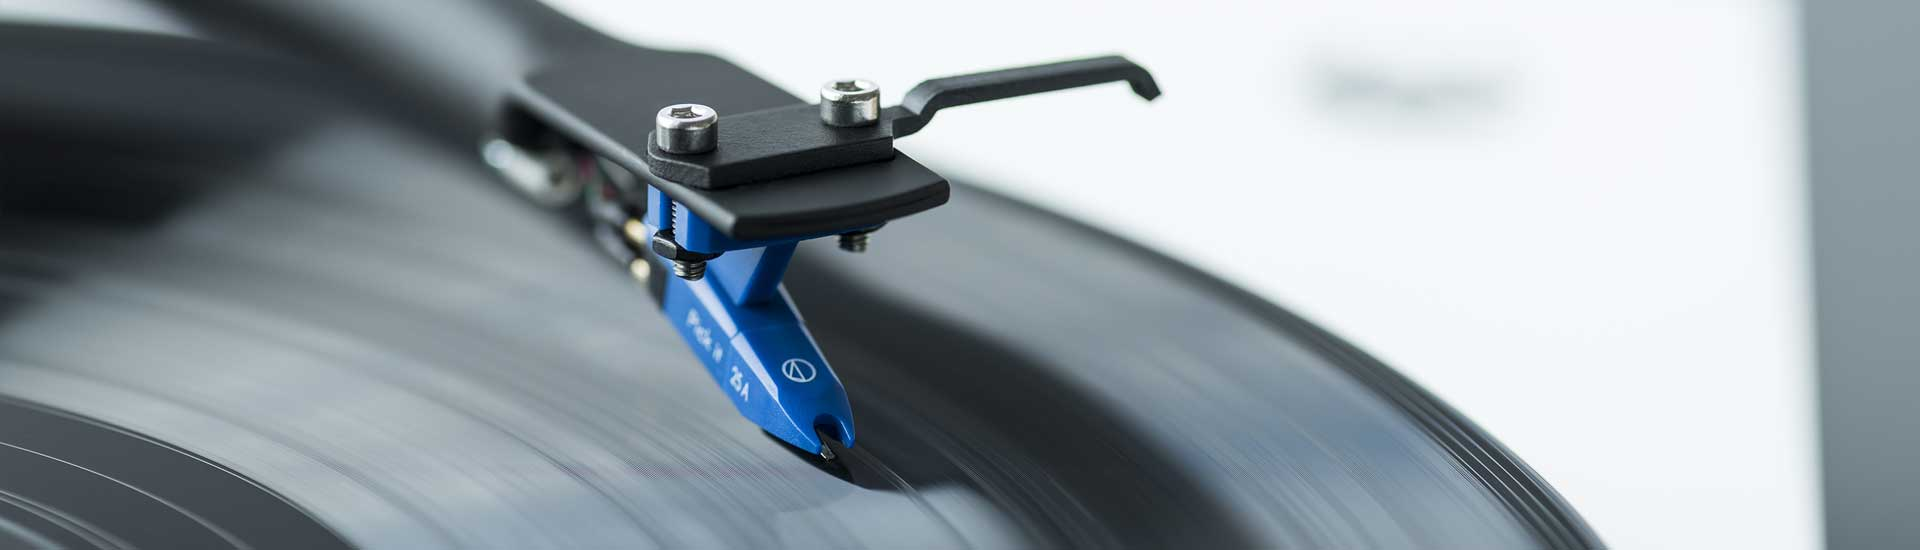 Turntable care blog header